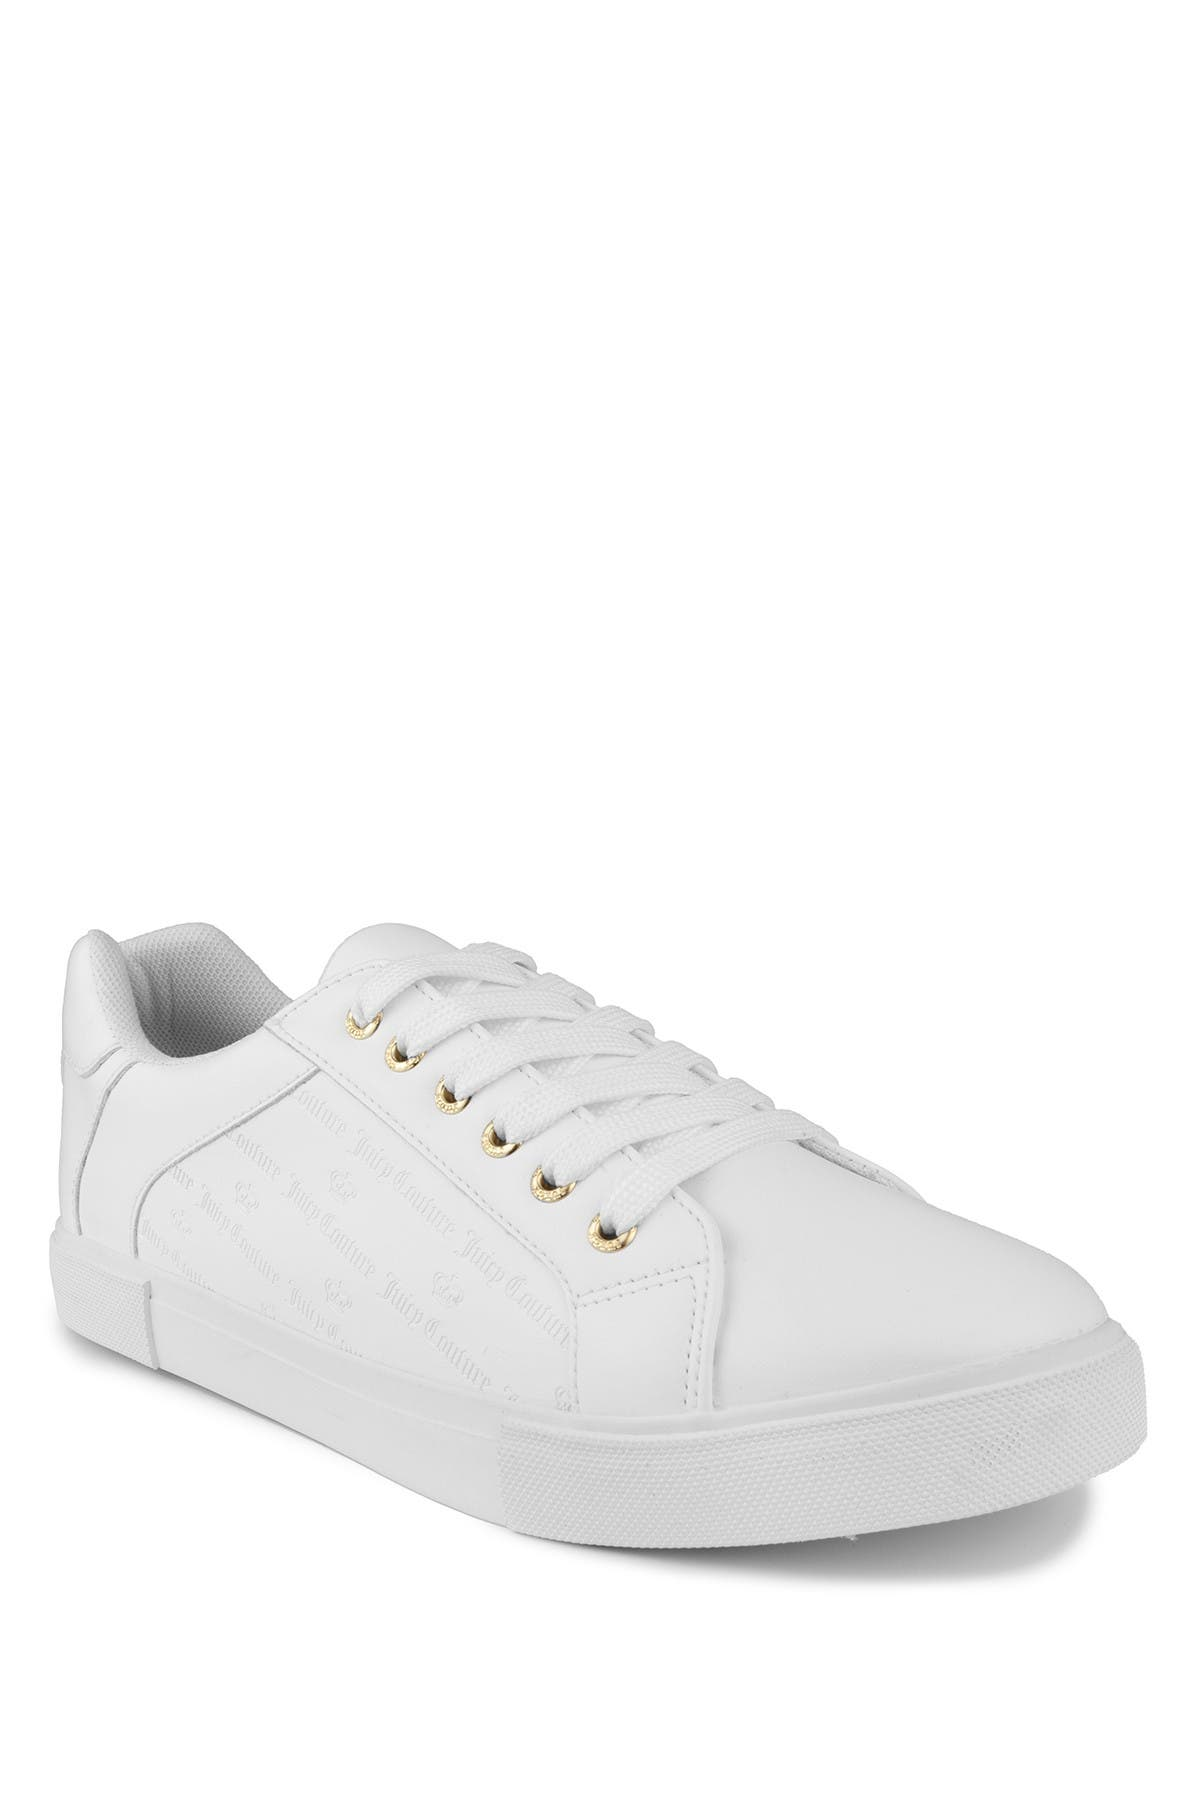 Image of Juicy Couture Cheer Fashion Sneaker